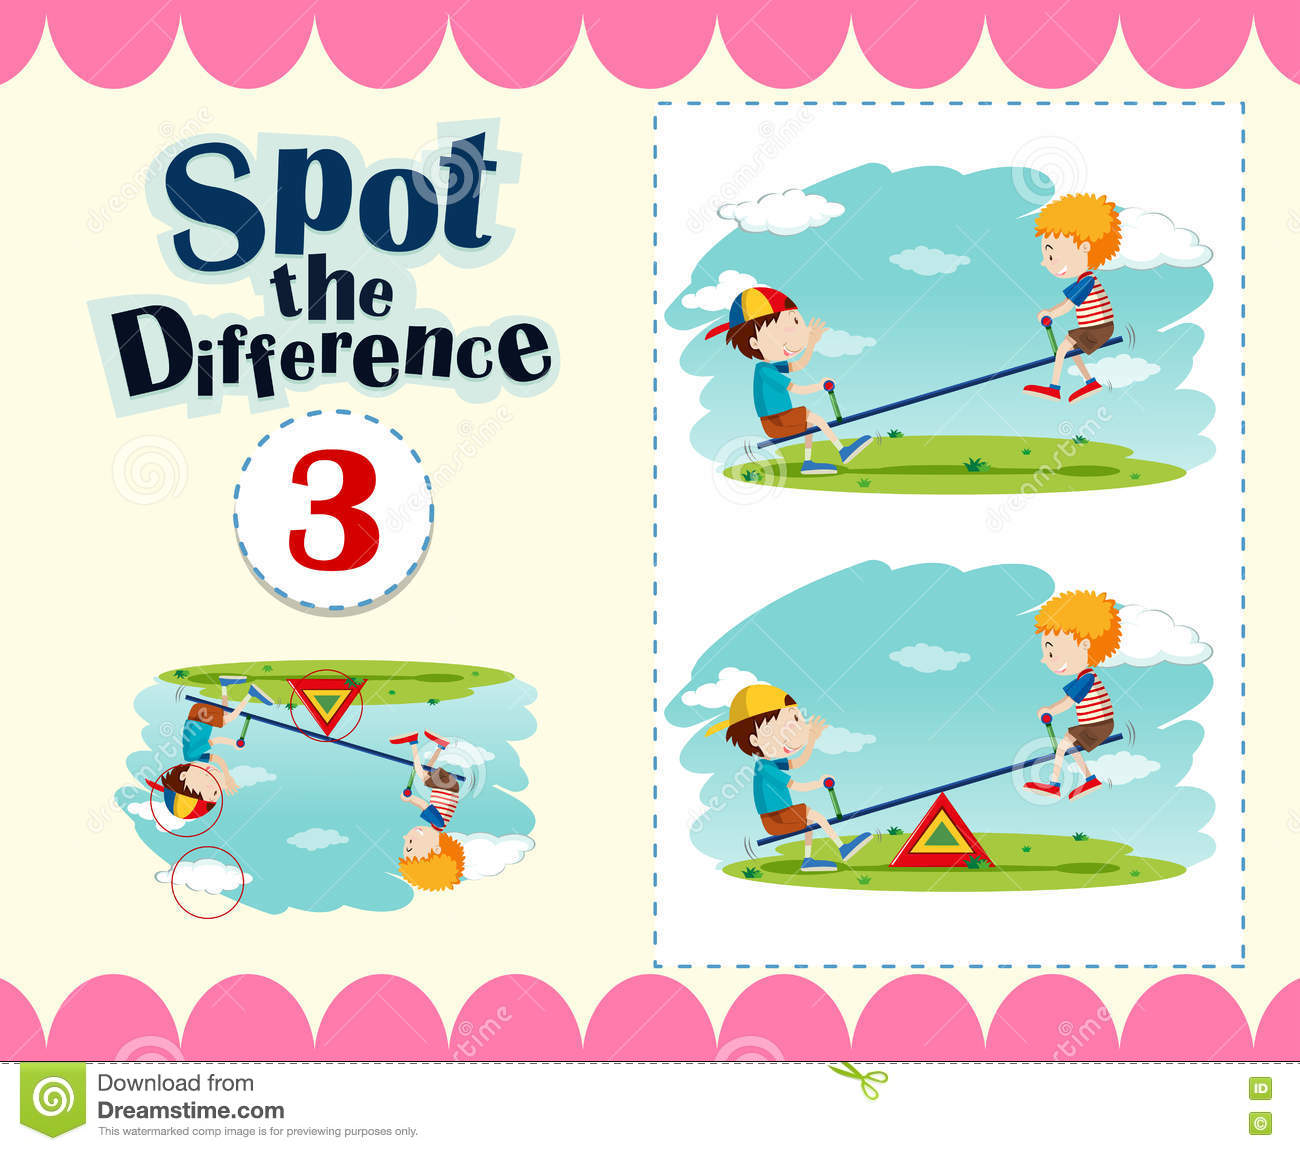 Spot the difference games download free